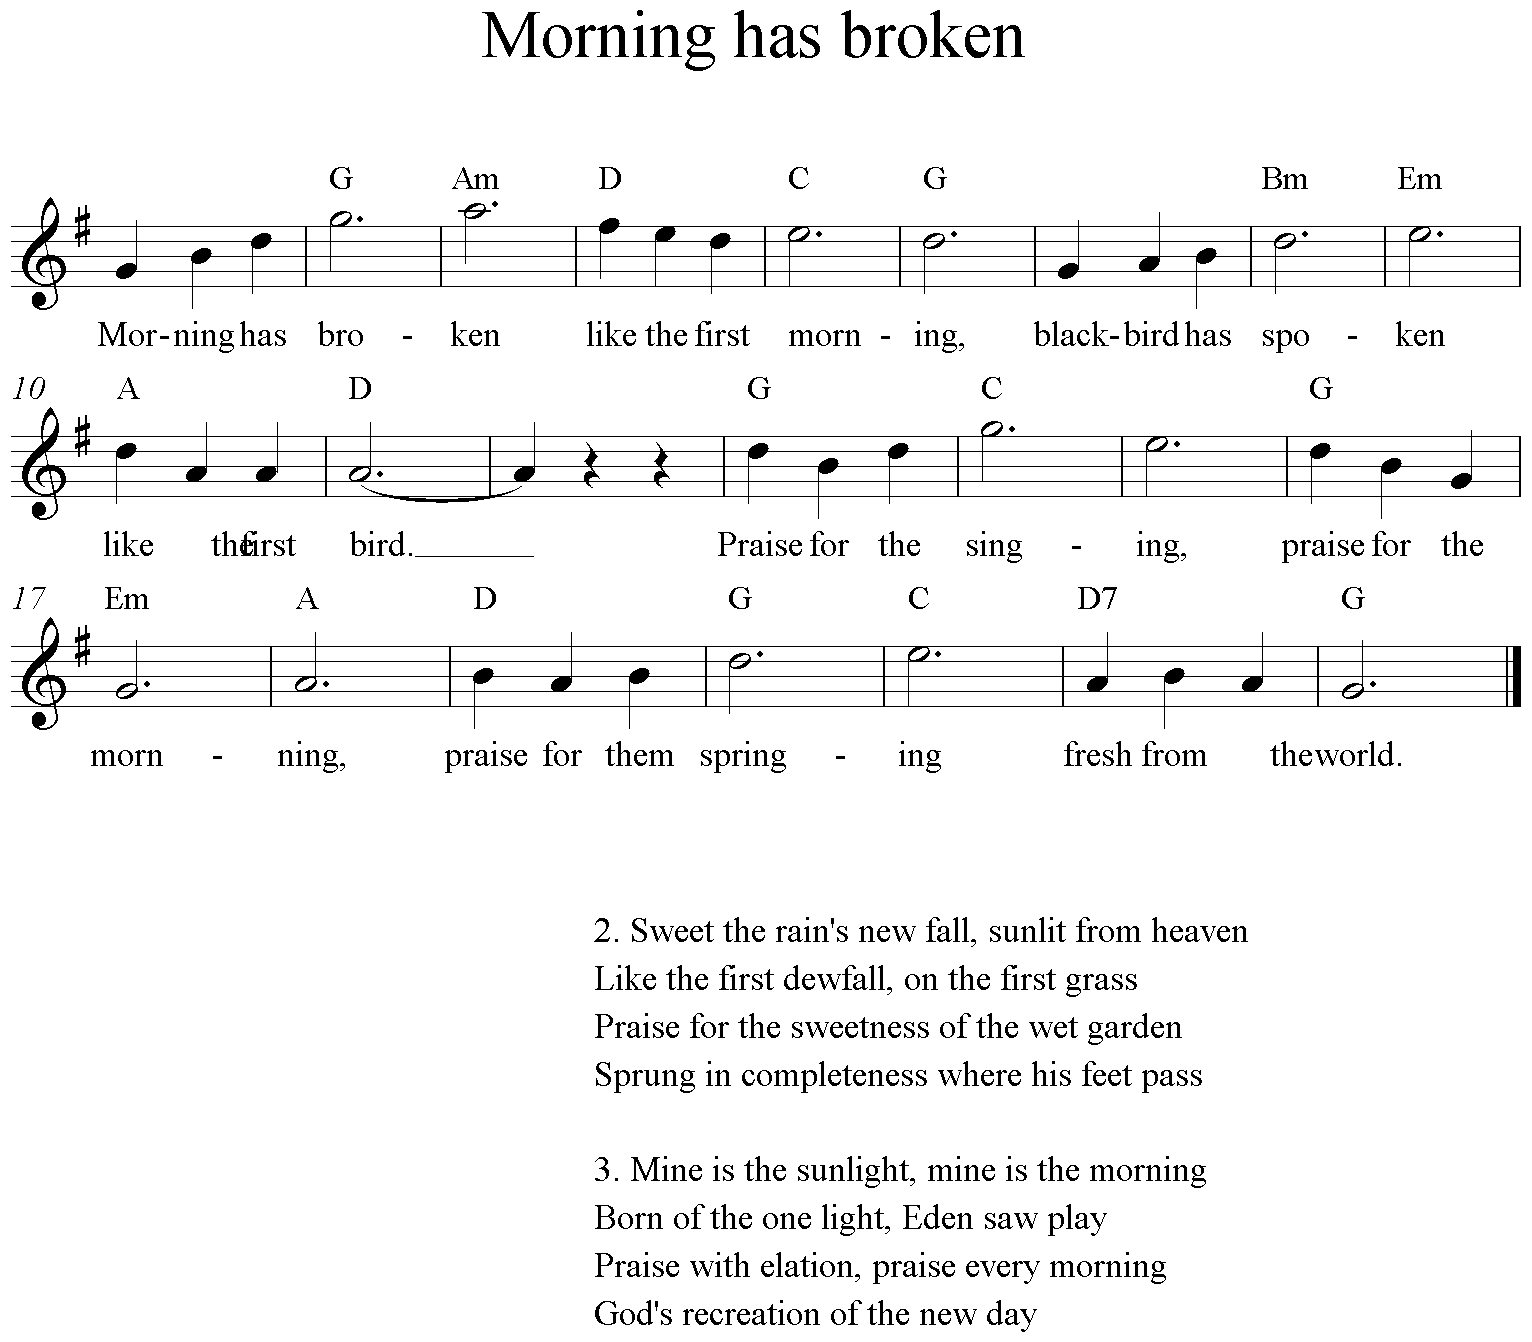 Morning has broken, Clarinet, G-Major